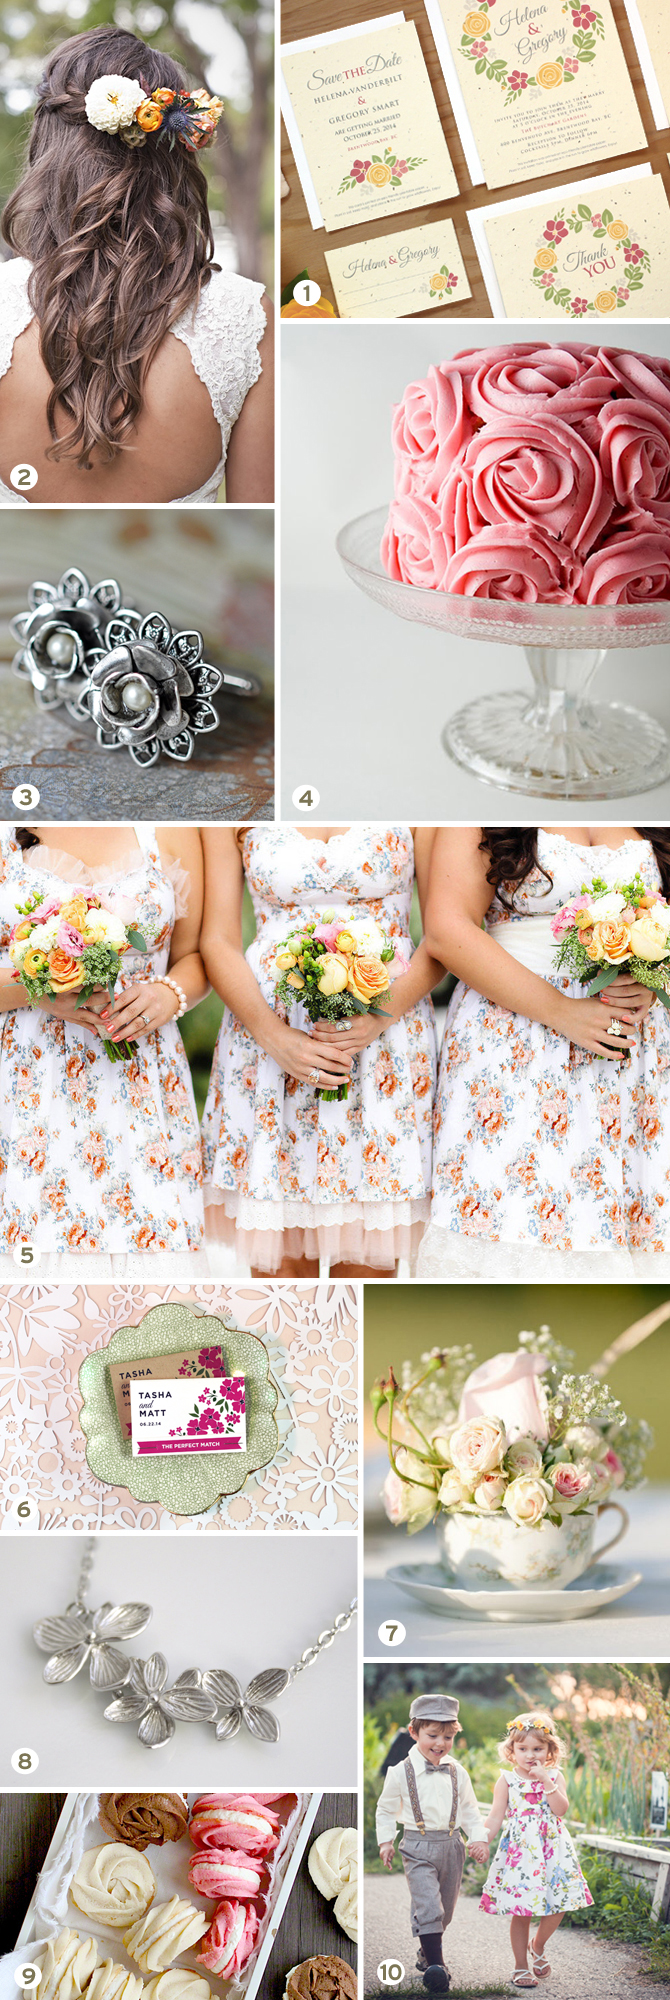 A beautiful floral-themed wedding inspiration board, from favors to flowers and more.